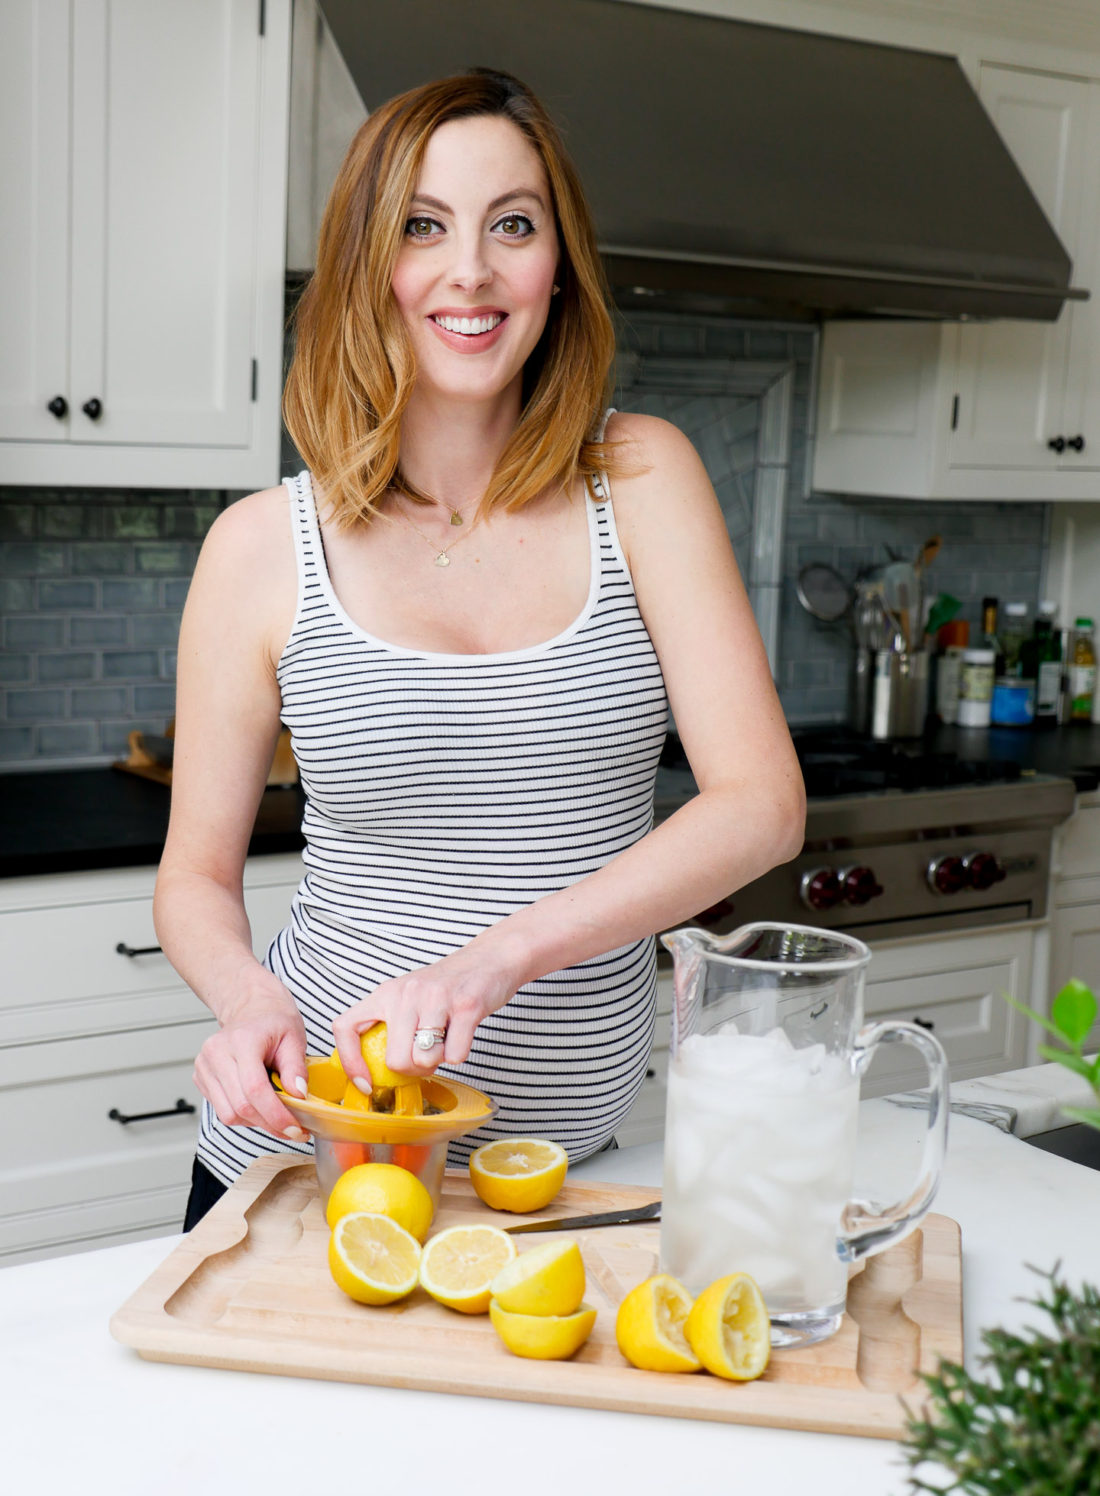 Eva Amurri Martino of lifestyle blog Happily Eva After squeezing lemons in her kitchen to make a hydrating laborade for her Home Birth